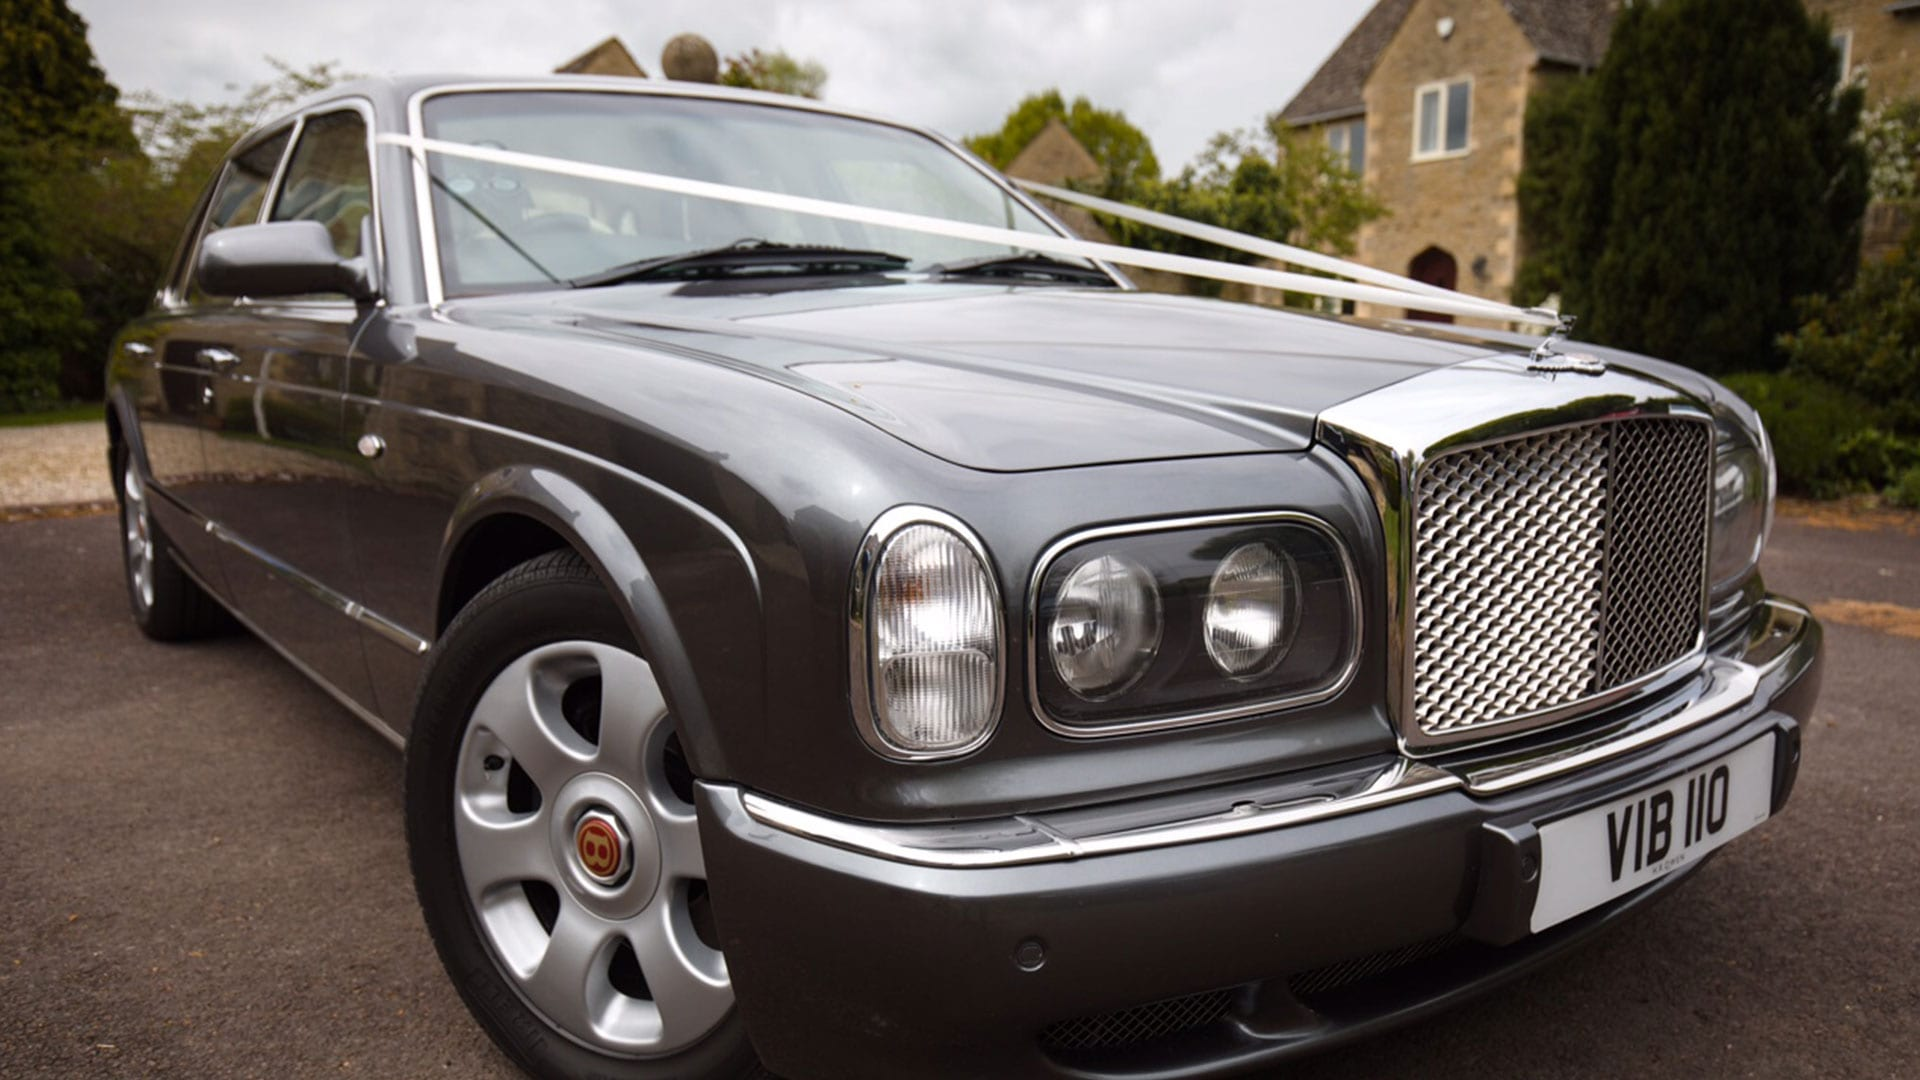 Azure's Bentley Arnage wedding car with ribbons